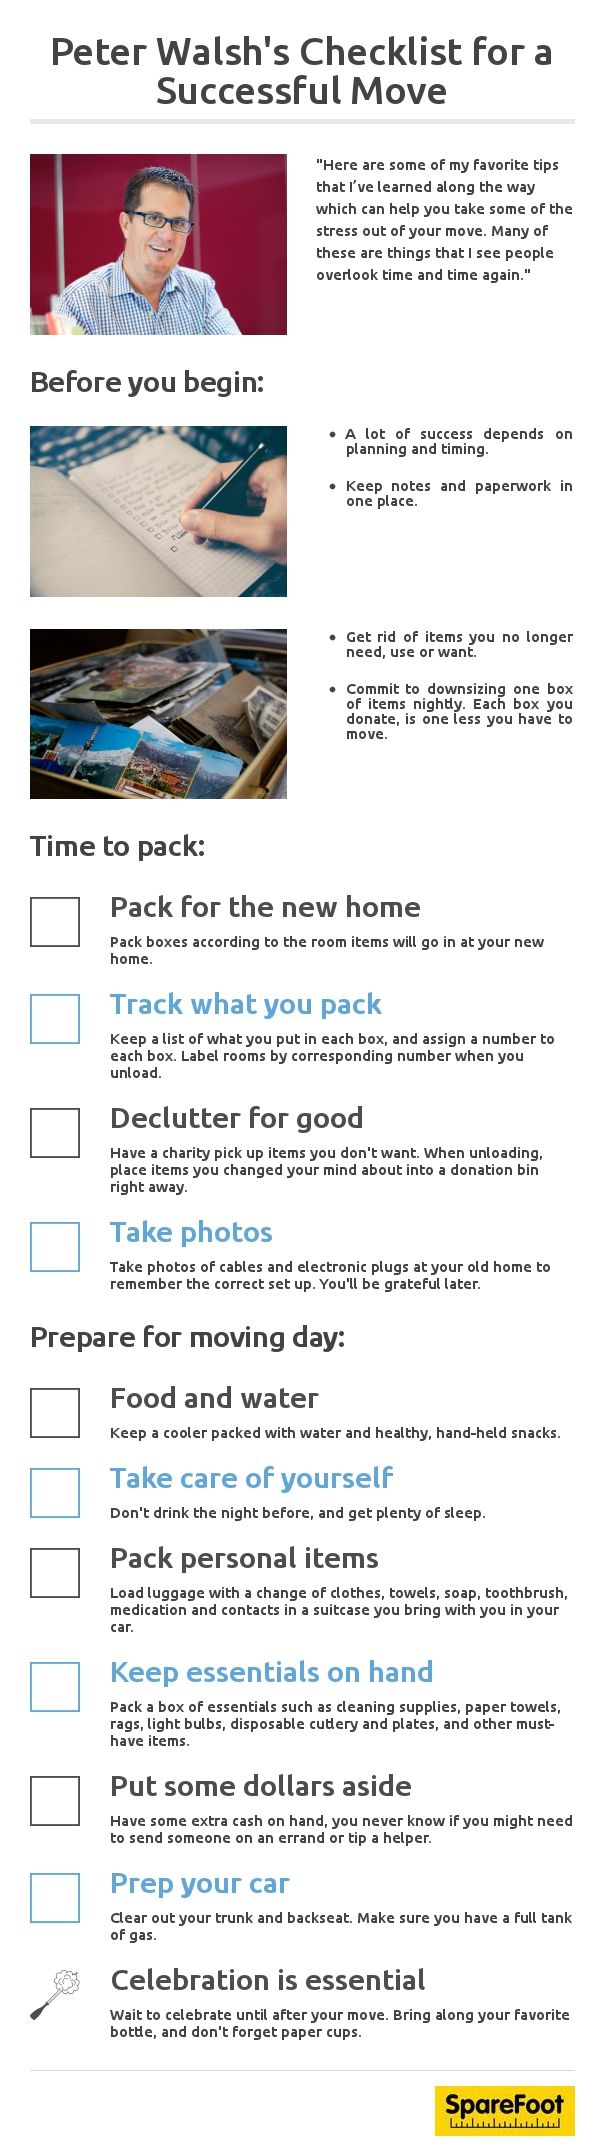 Some helpful tips from @ThePeterWalsh to help take some of the stress out of your move